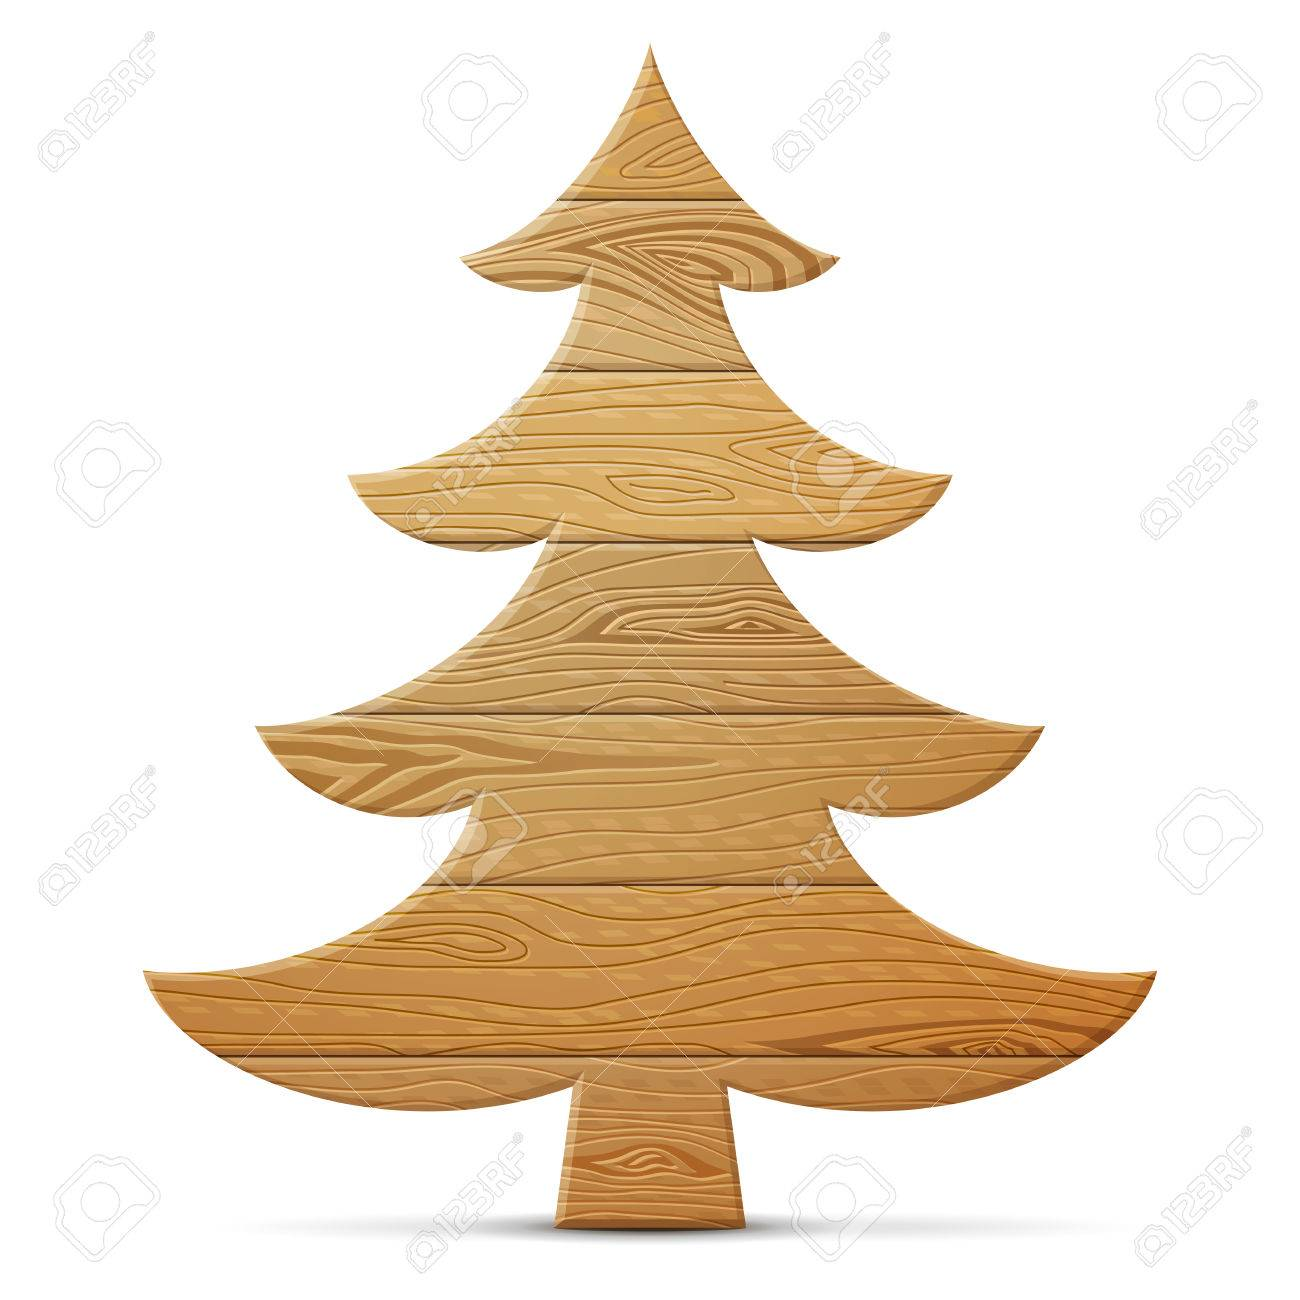 acbfd2e368d0a Christmas tree of wood isolated on white background. Wooden planks in shape  of pine.